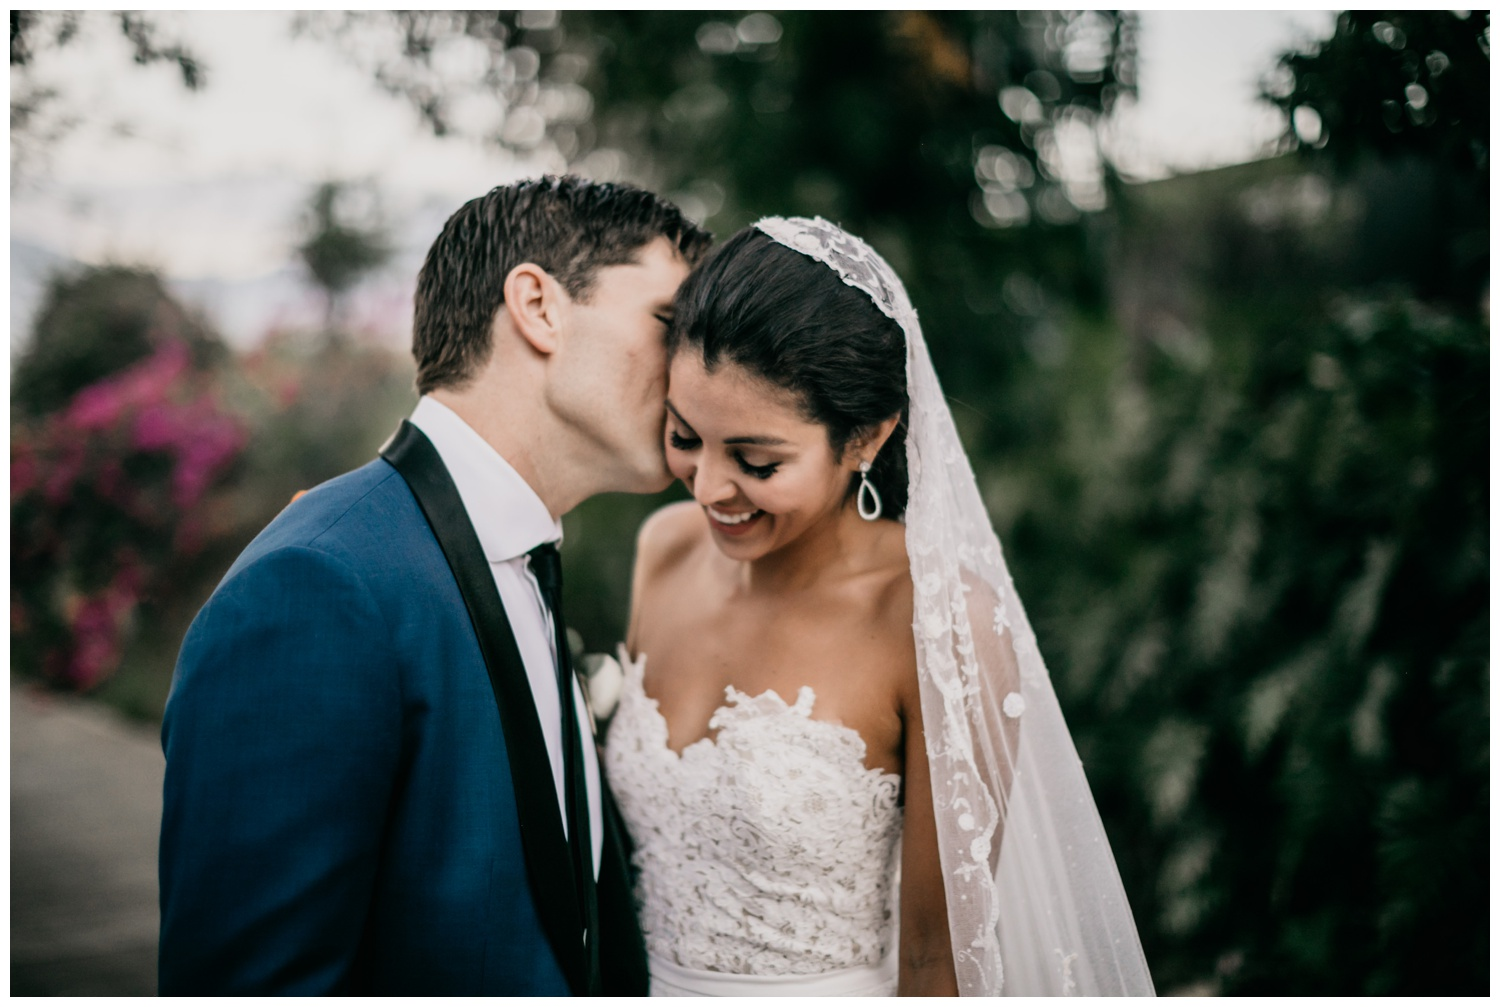 adriana_rivera_miranda_weddings_el_salvador_32.jpg